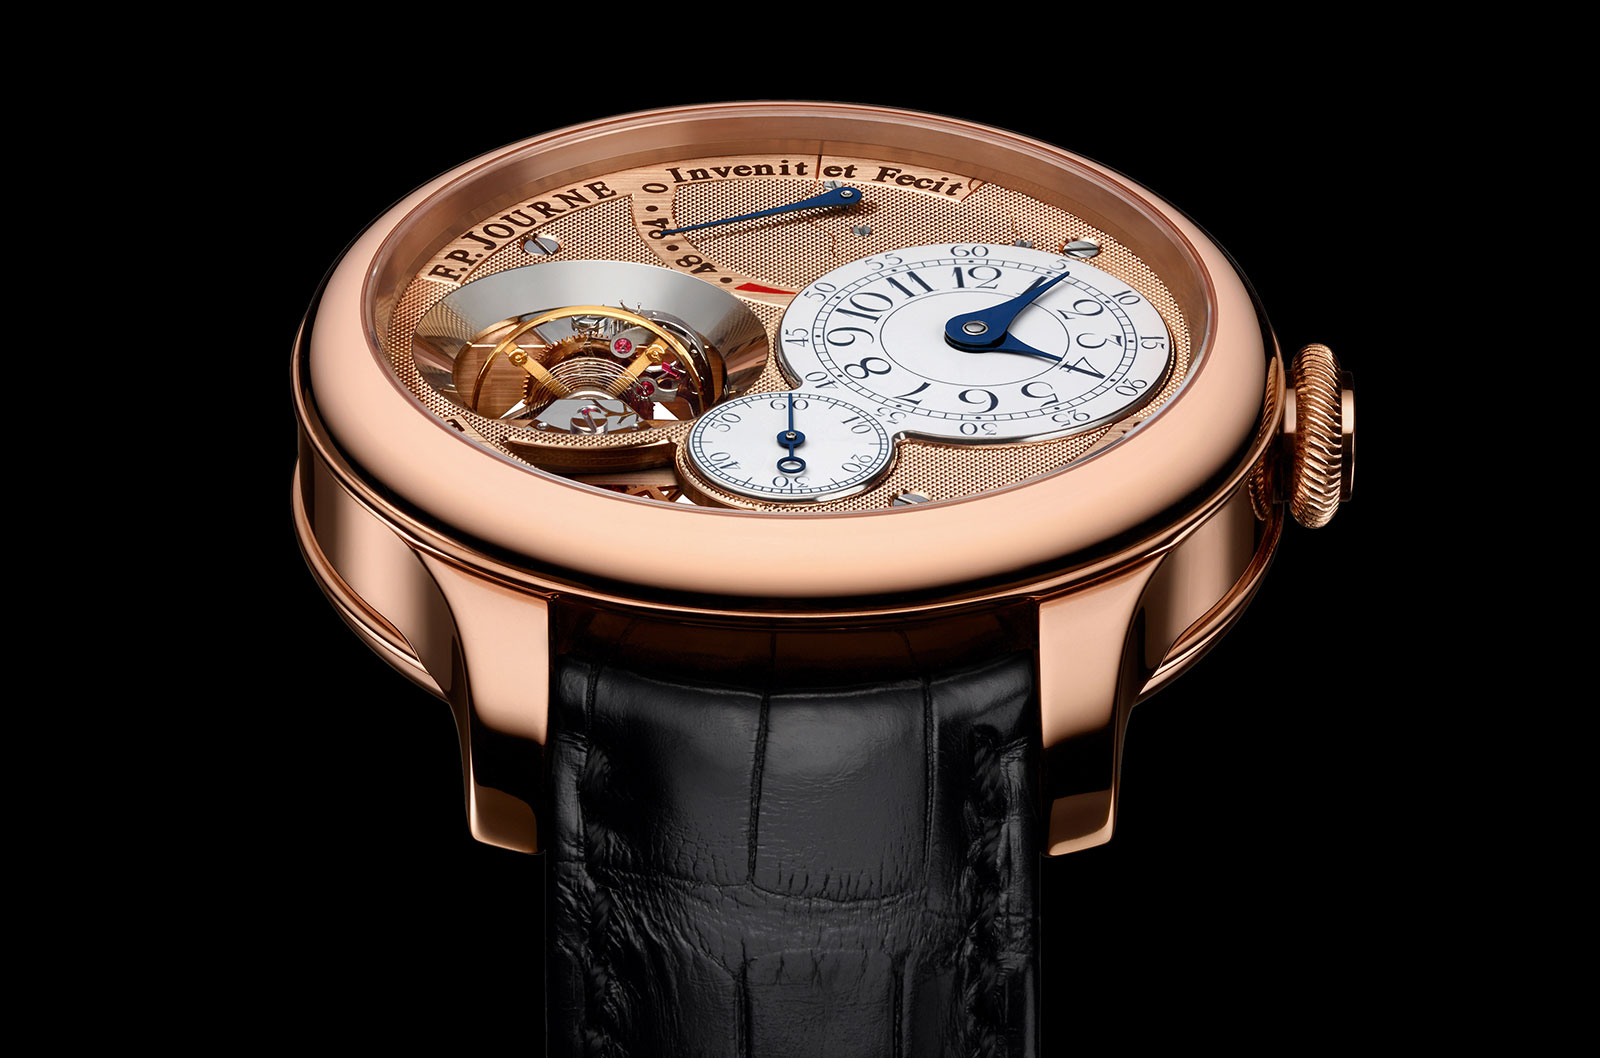 FP Journe Tourbillon Souverain Vertical 6